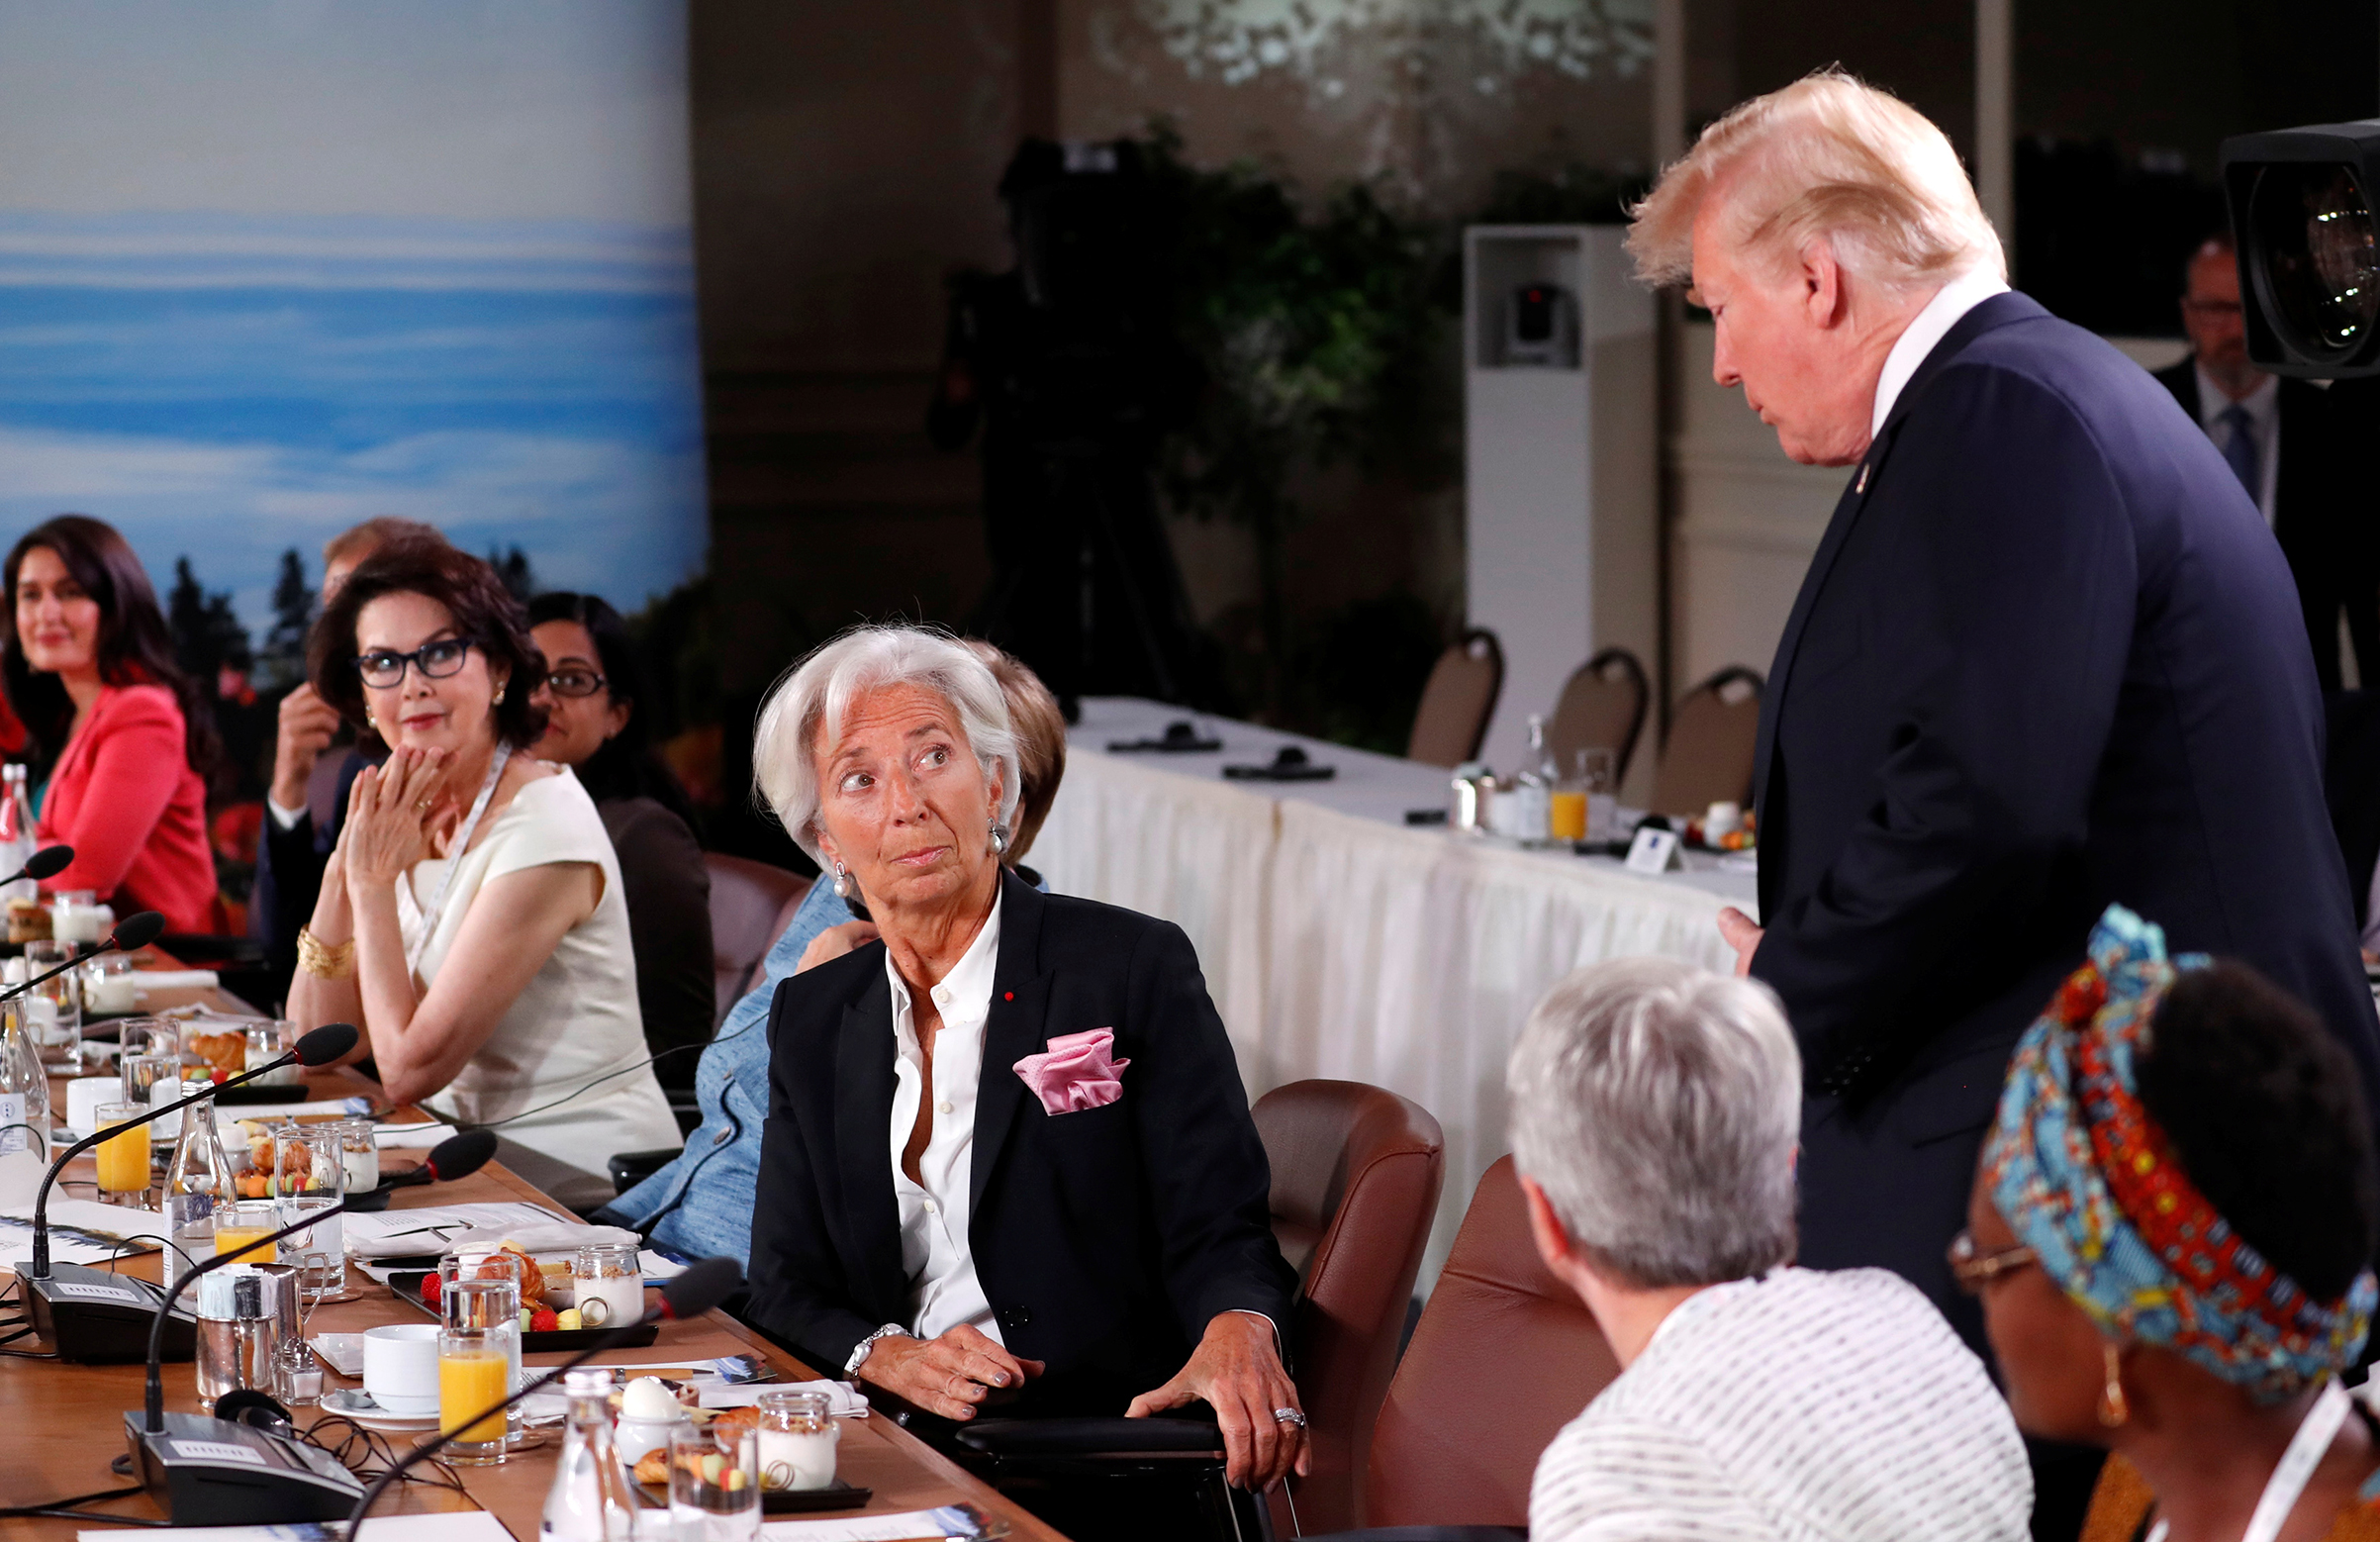 President Trump arrives as Managing Director of the International Monetary Fund, Christine Lagarde, looks up while they attend a G7 and Gender Equality Advisory Council meeting as part of the summit in Canada on June 9, 2018.